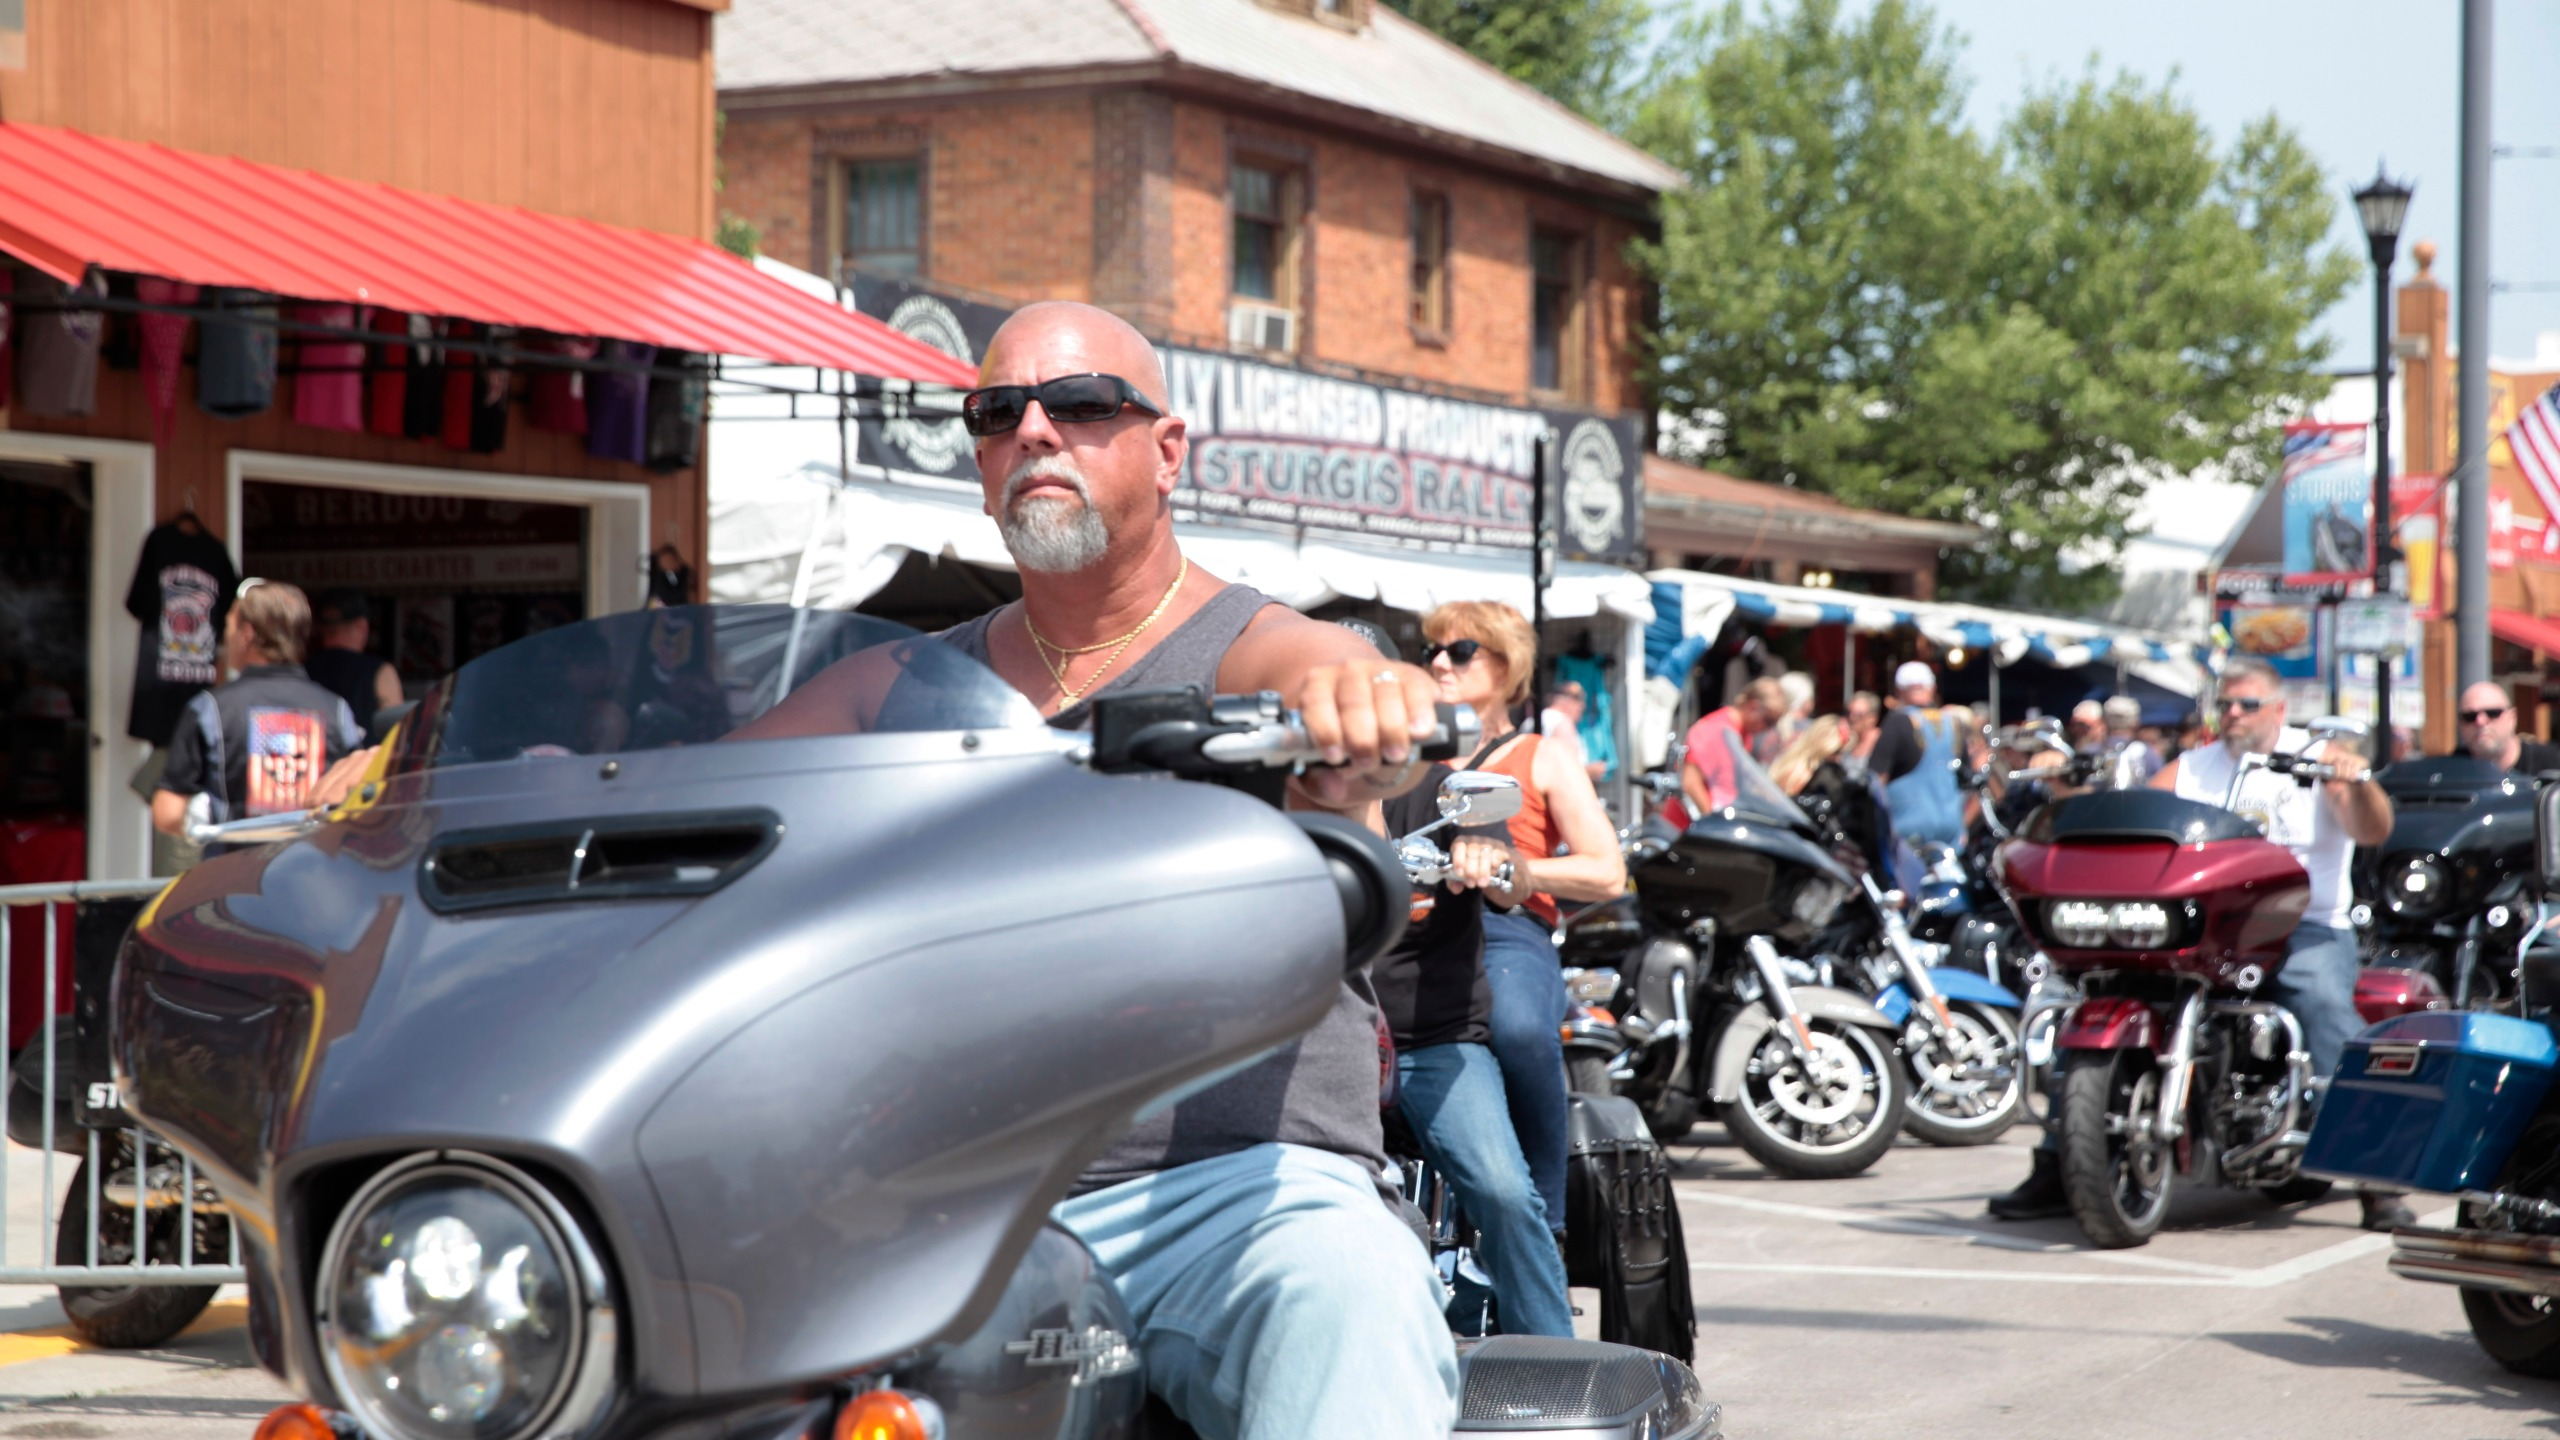 Motorcycles fill the streets of Sturgis, S.D on Friday, Aug. 6, 2021 as the Sturgis Motorcycle Rally began. The annual rally returns just as coronavirus cases in the state are rising with the more contagious delta variant. (AP Photo/Stephen Groves)